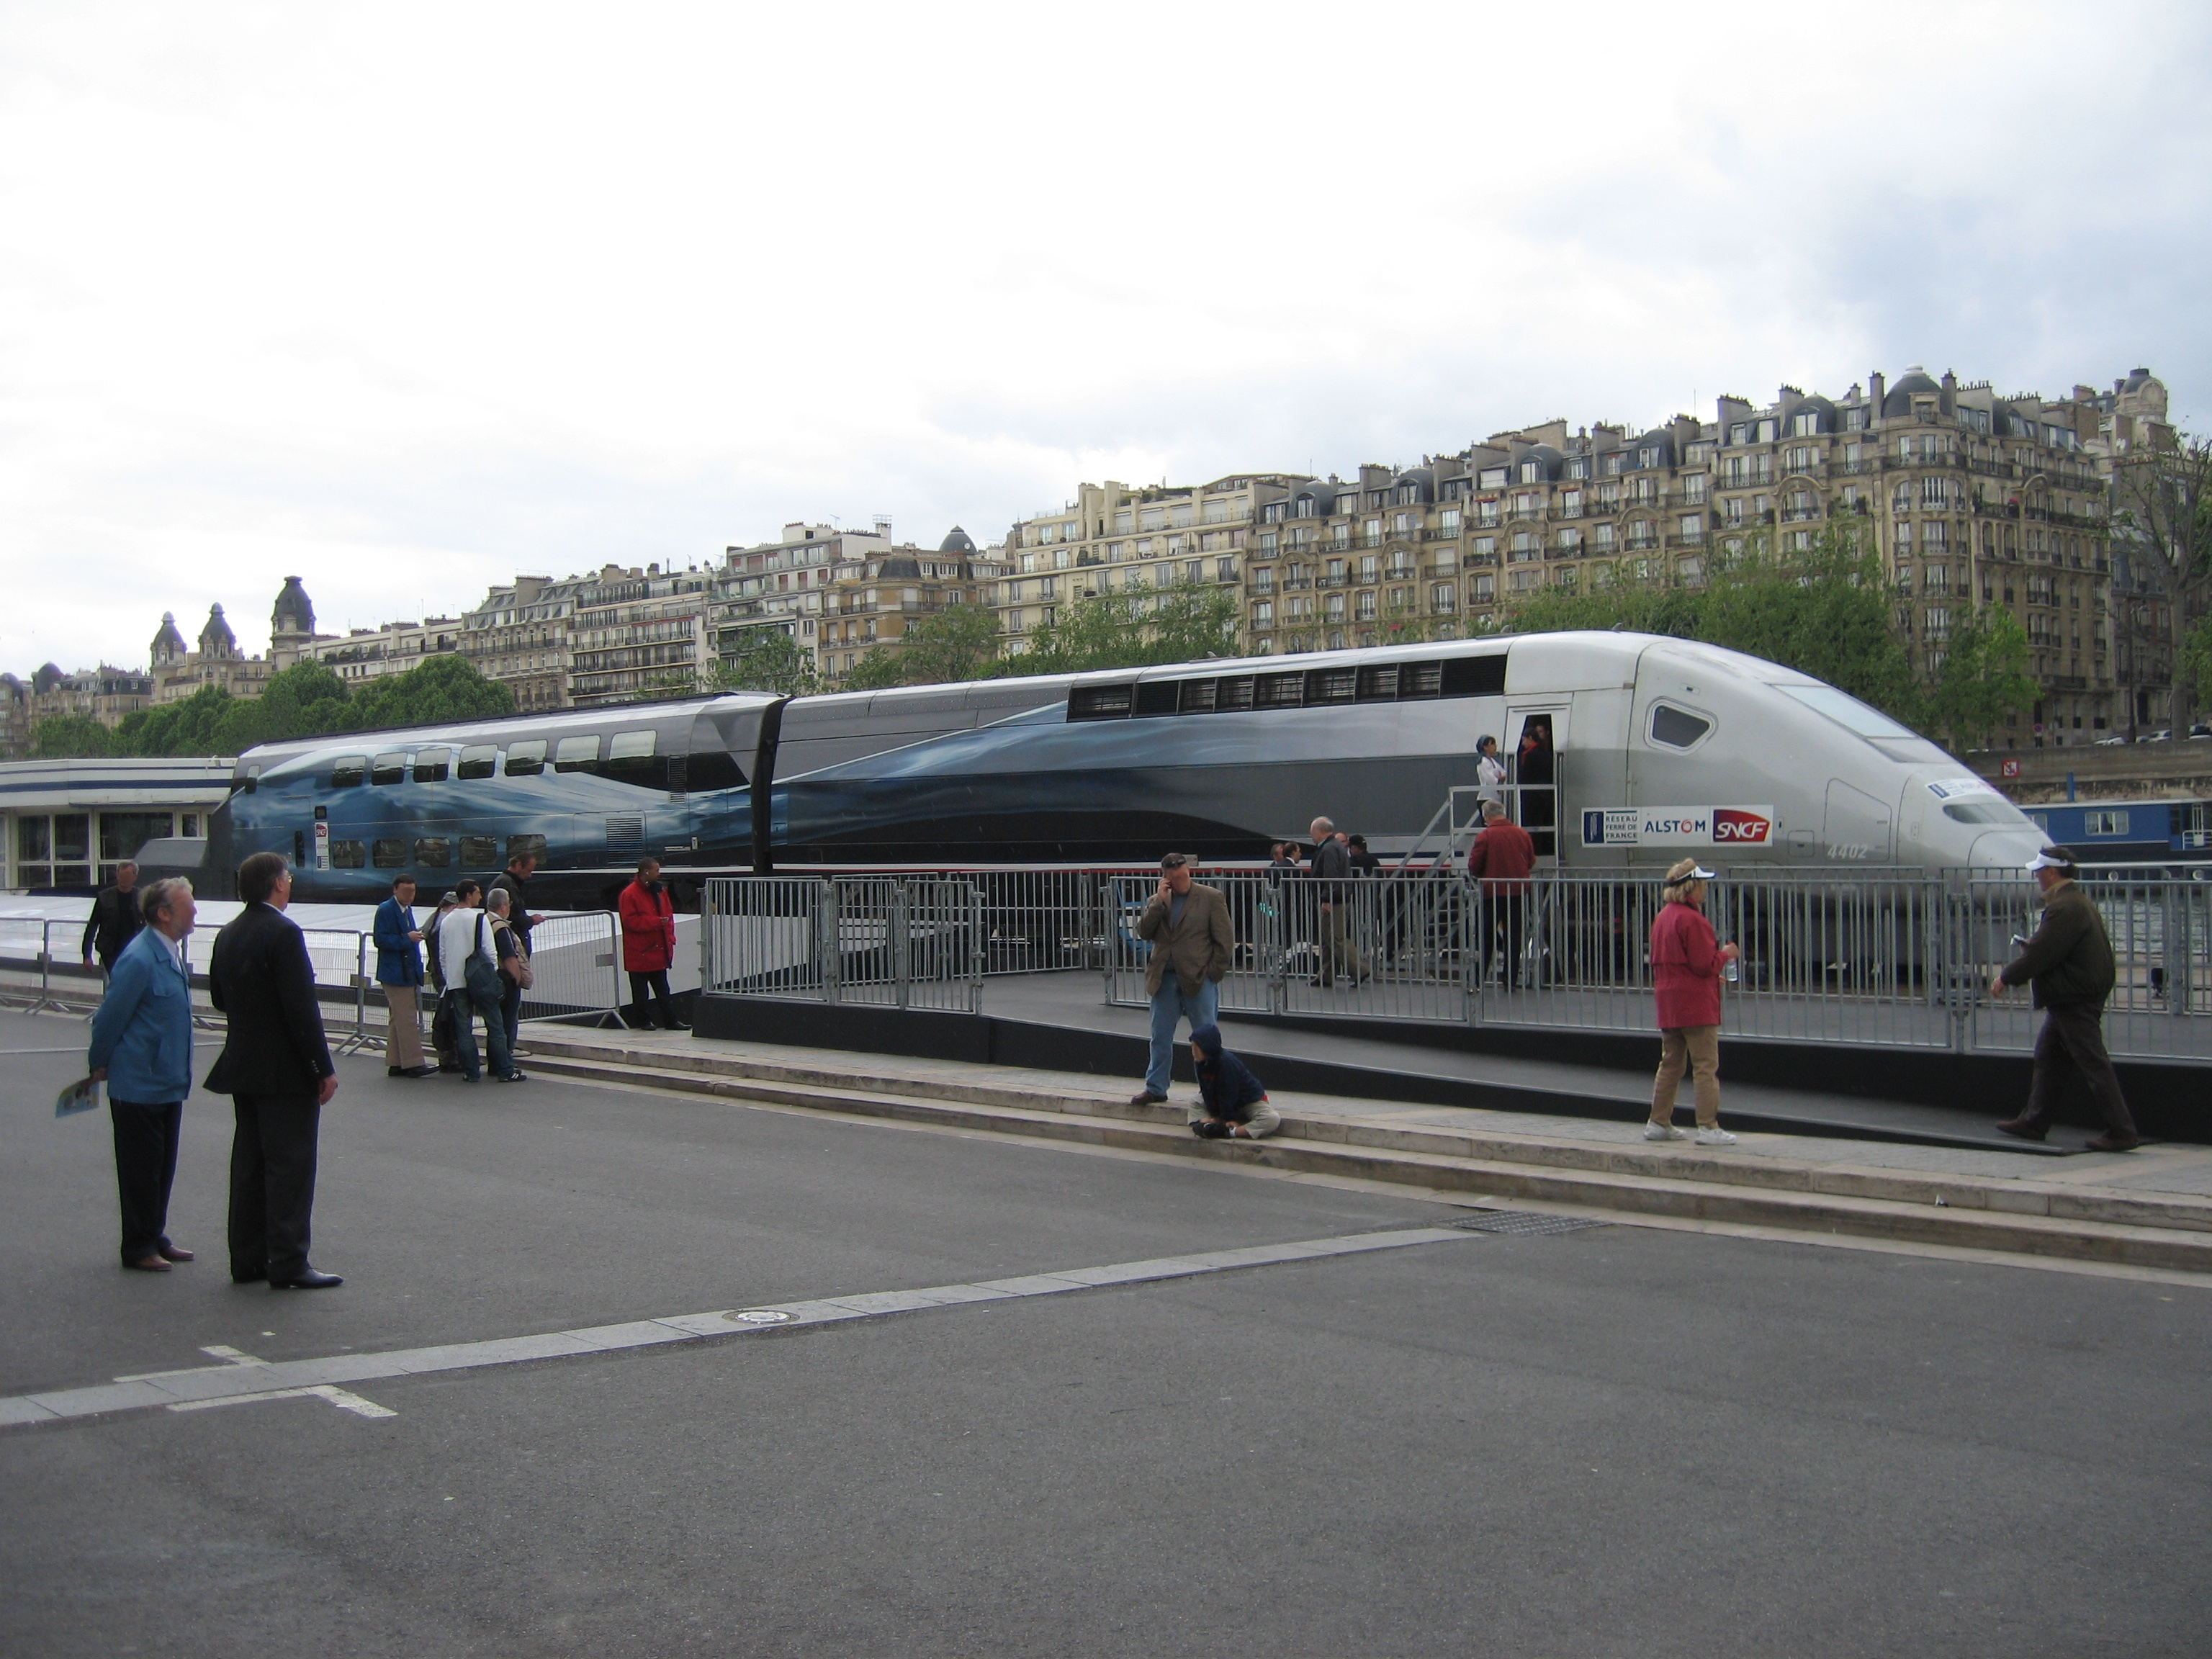 http://upload.wikimedia.org/wikipedia/commons/5/5d/TGV_Rame_4402_20070514_b.jpg